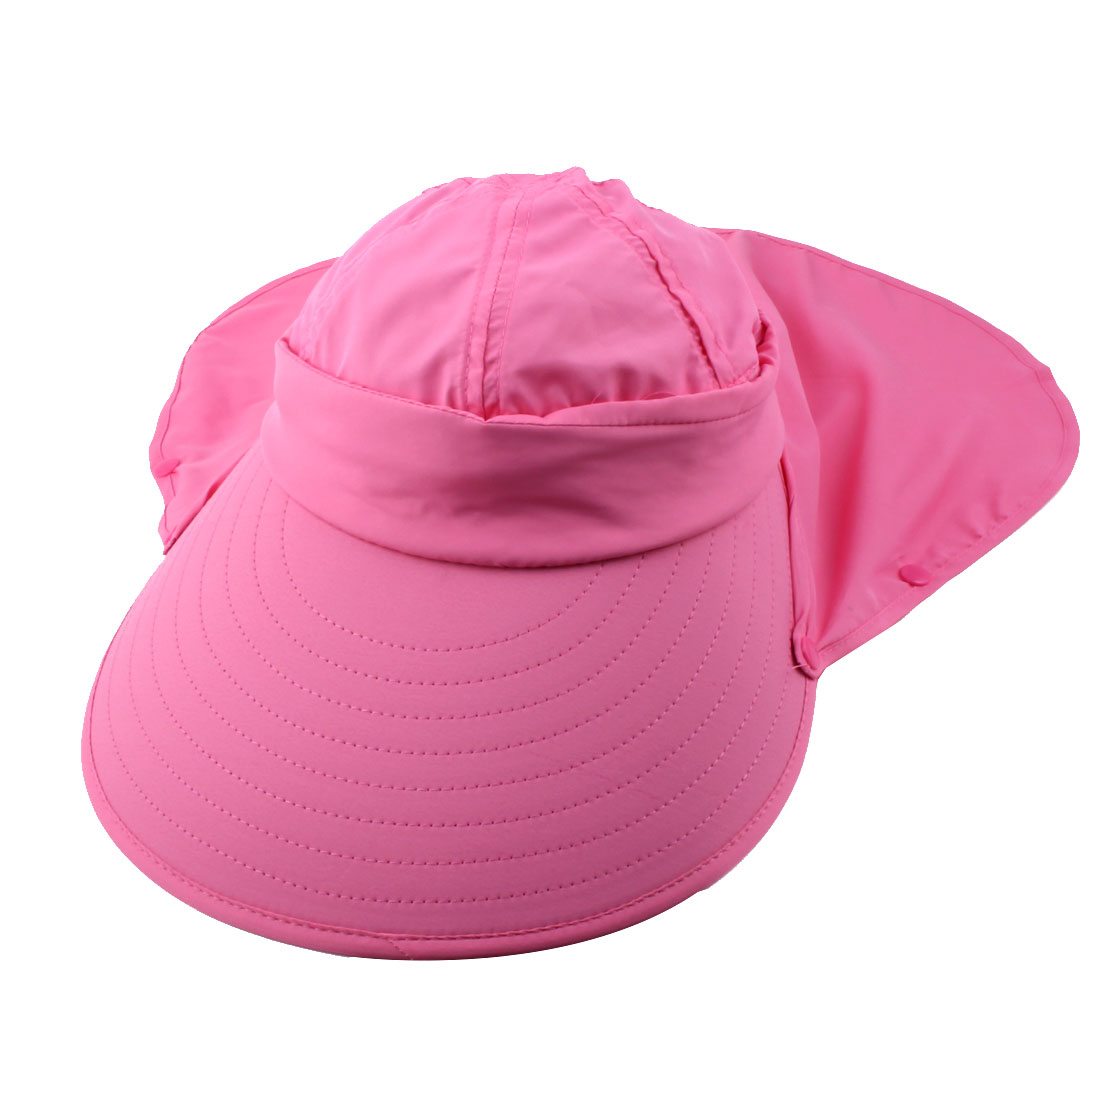 Lady Outdoor Summer Cotton Blends Wide Brim Face Neck Cover Sun Visor Protector Hat Dark Pink